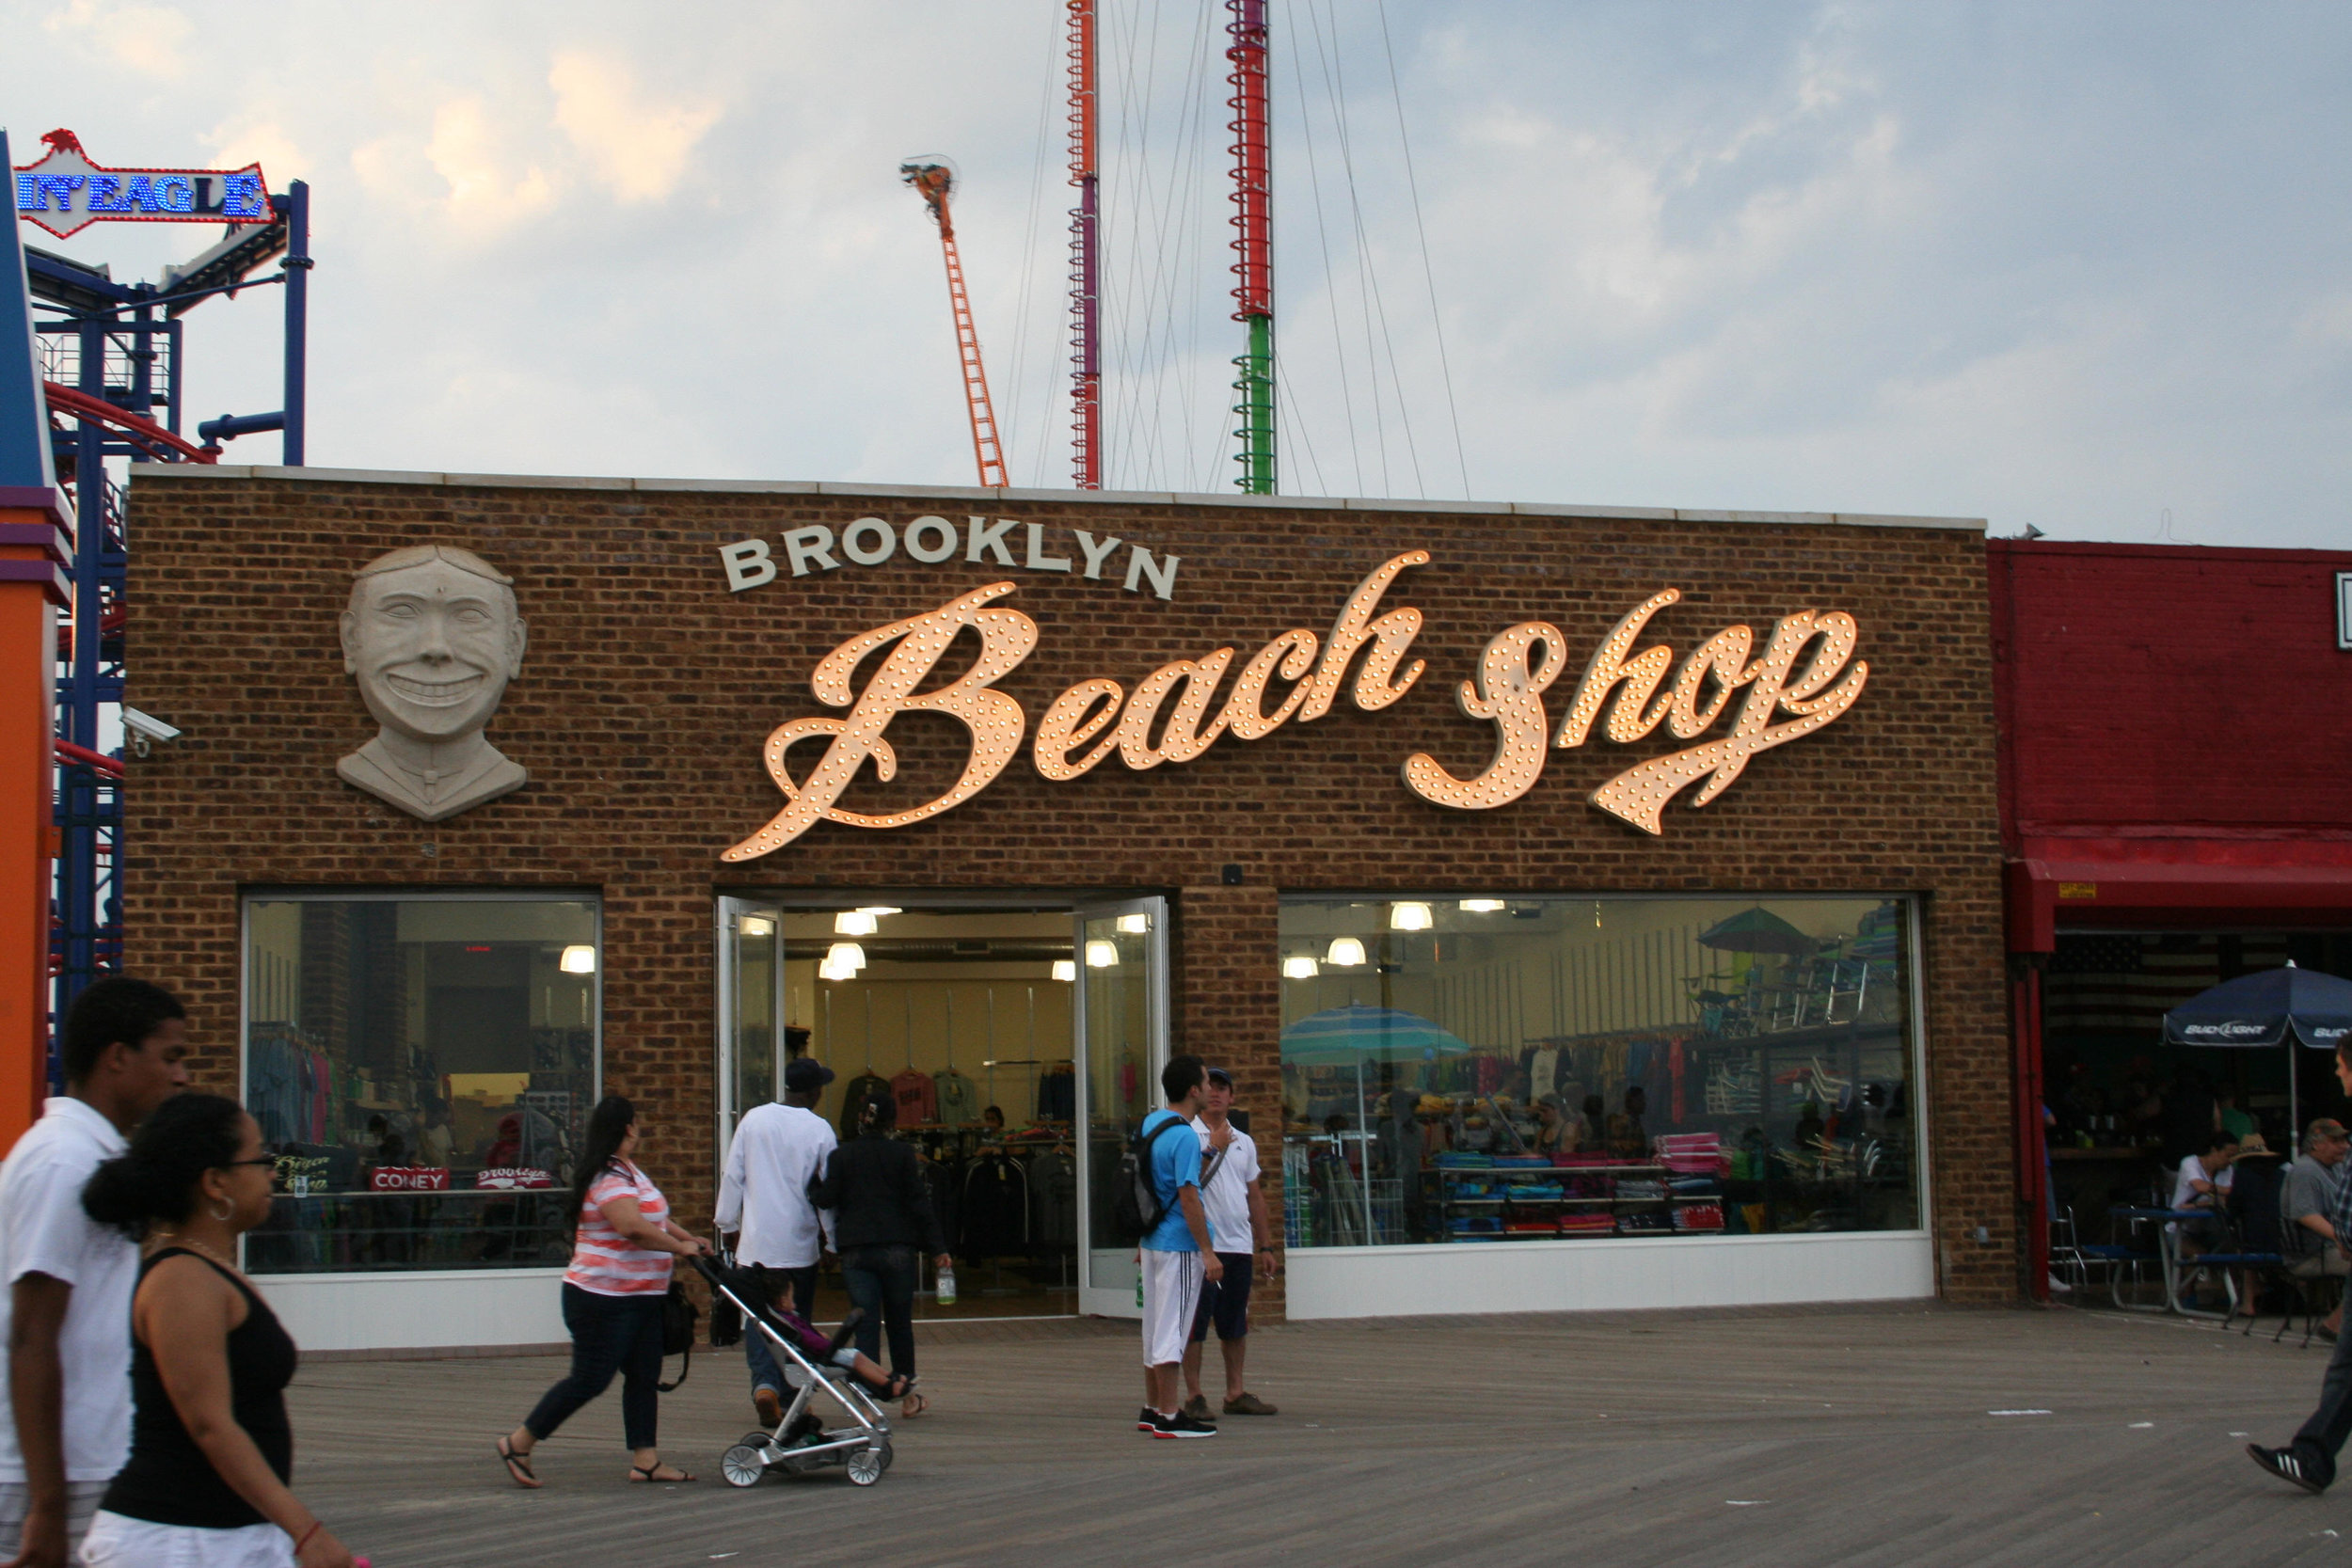 People walking by and a woman pushing a stroller by the Brooklyn Beach Shop on the Coney Island Boardwalk. MEP designed by 2L Engineering.